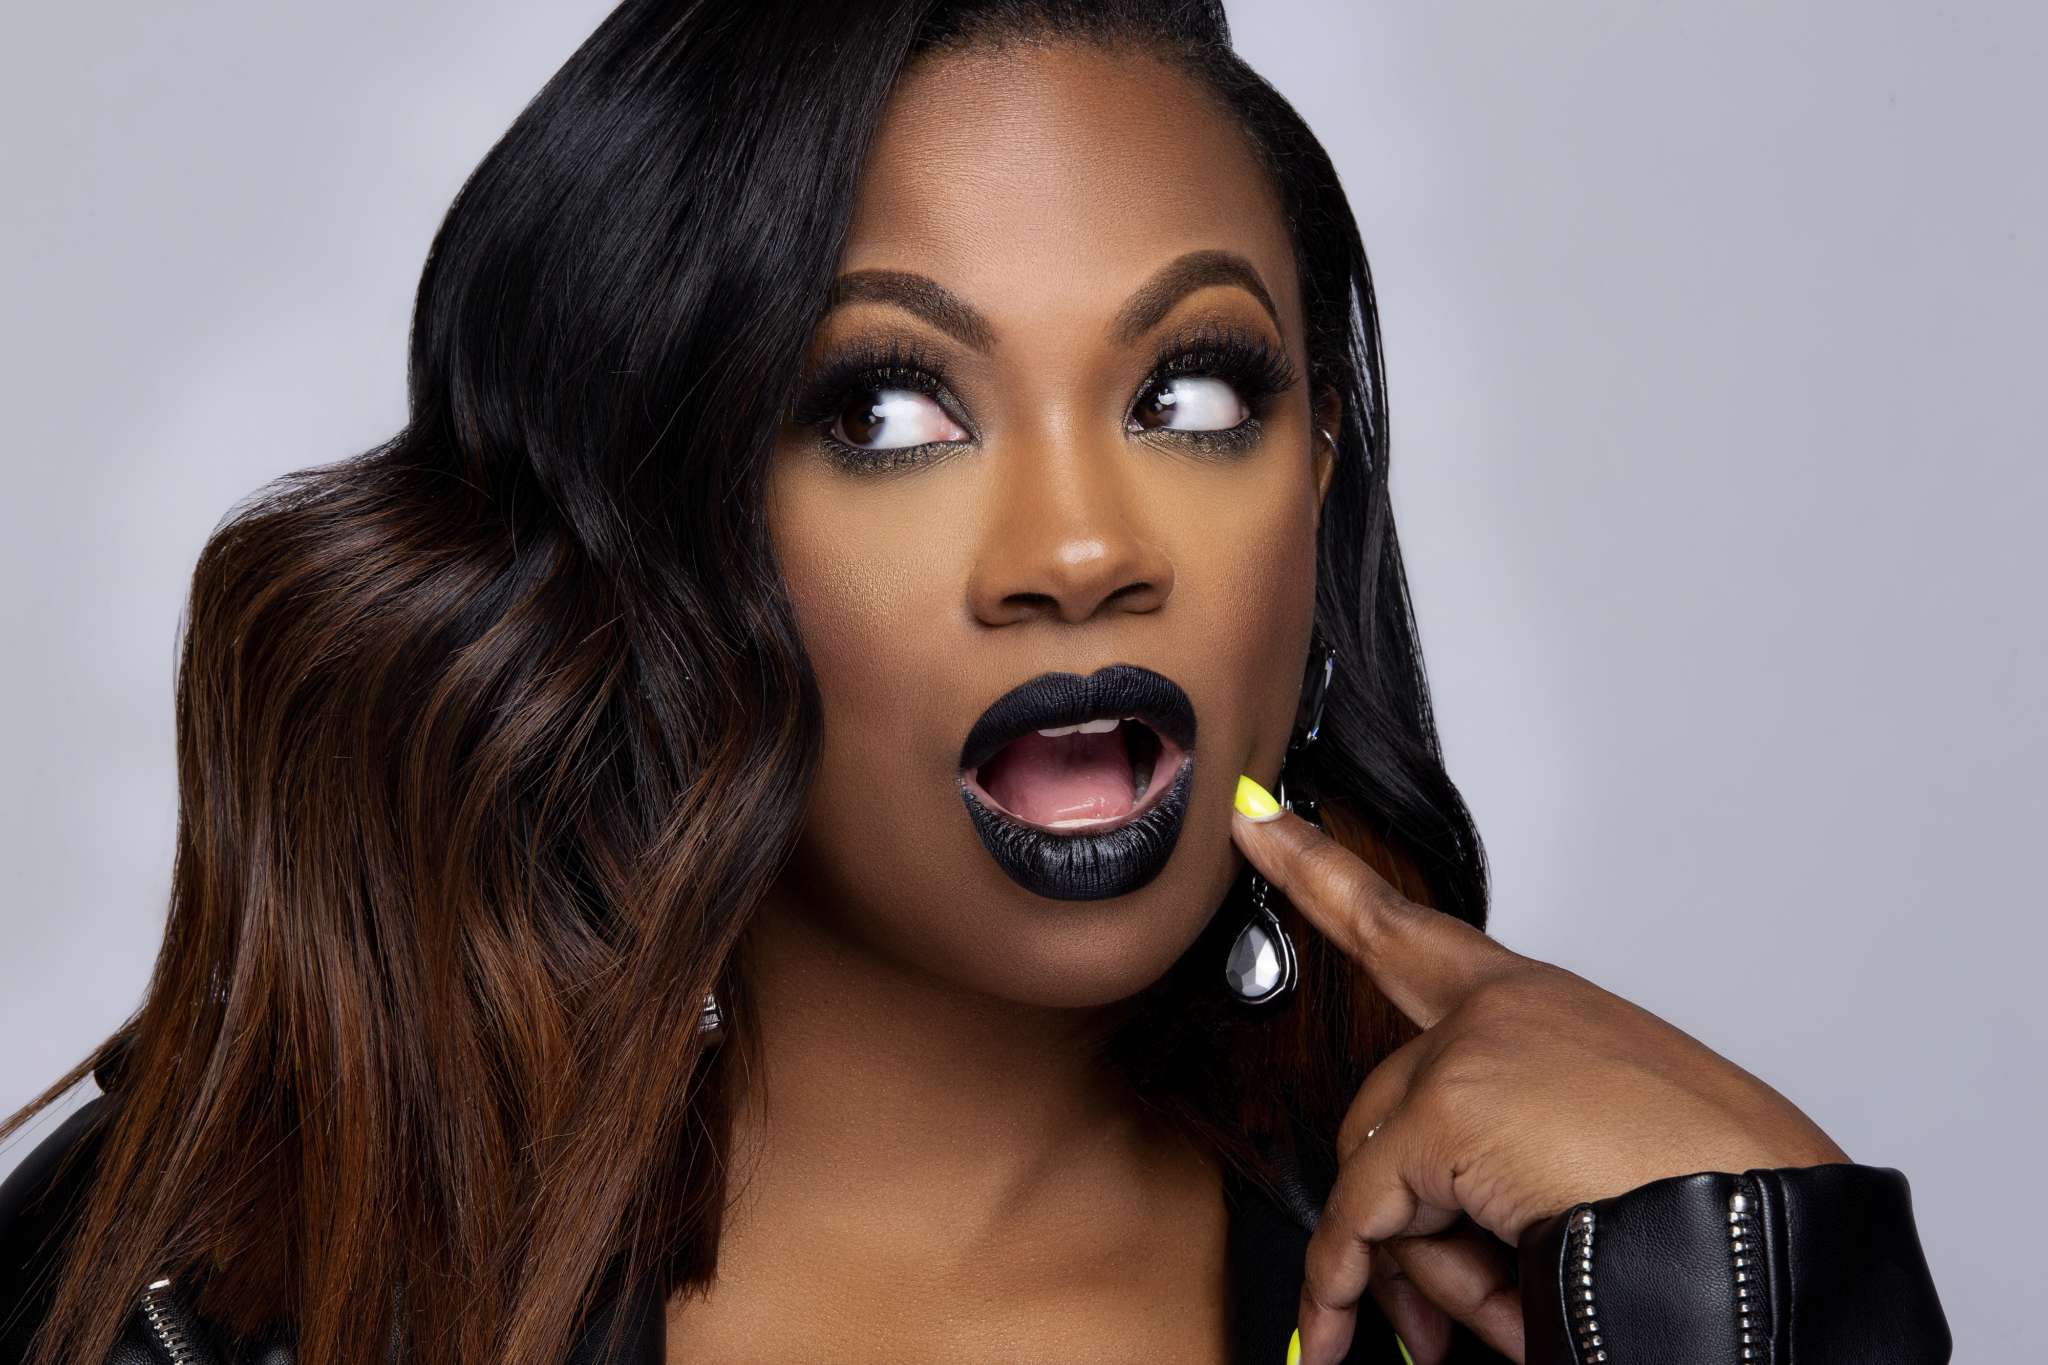 kandi-burruss-impresses-fans-with-this-black-and-white-photo